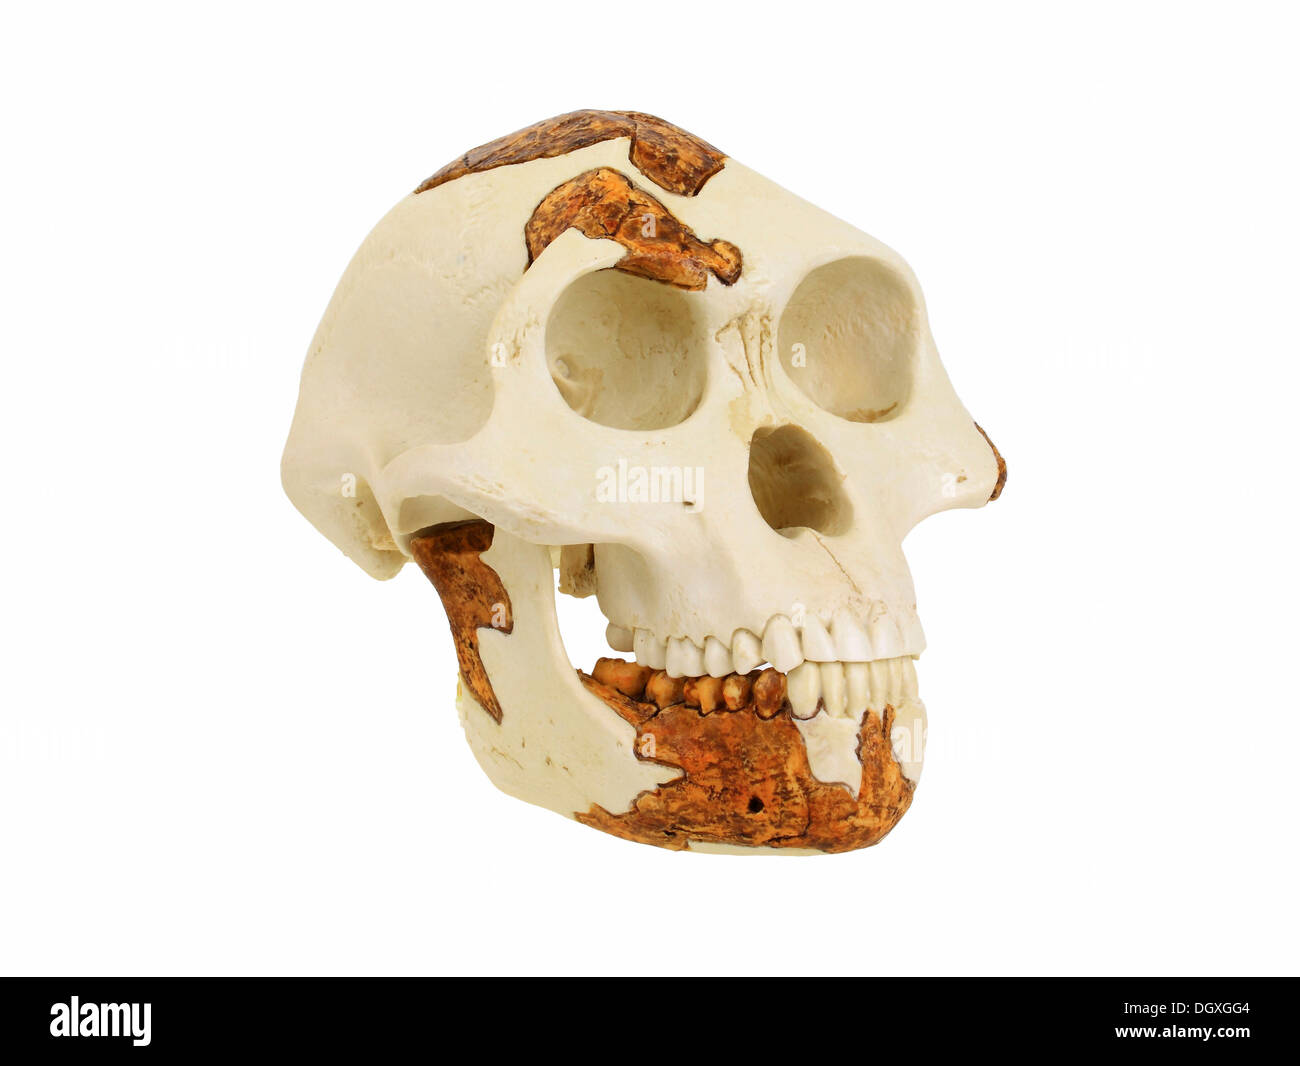 Replica skull of Australopithecus afarensis, Lucy, evolution of human species - Stock Image